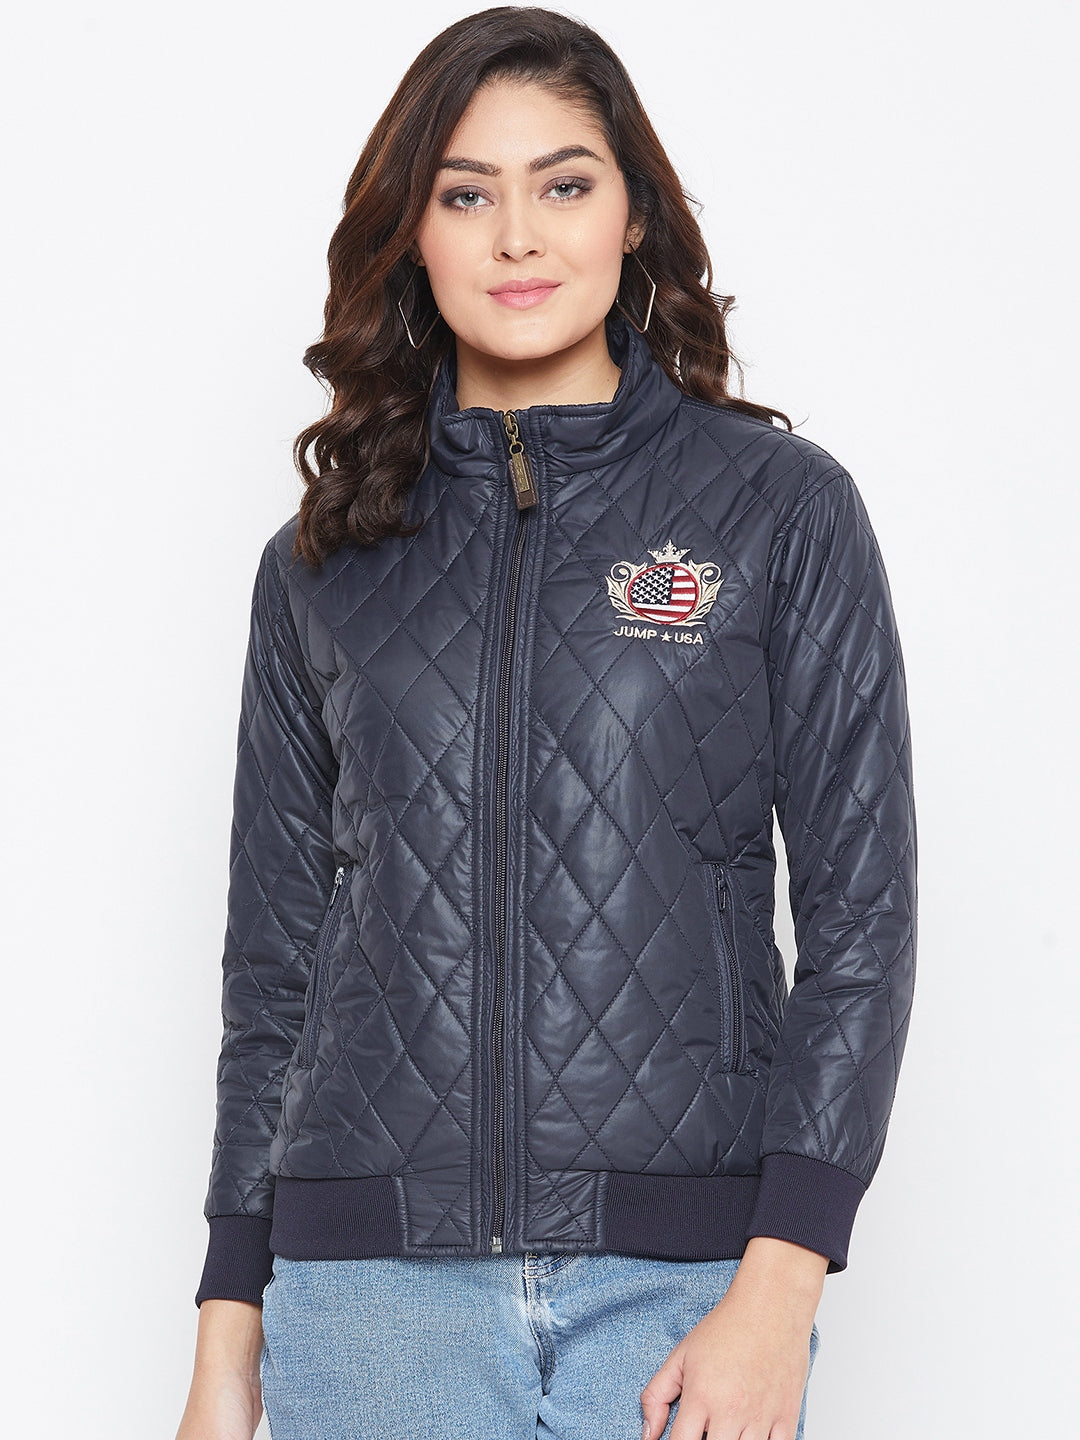 JUMP USA Women Navy Blue Self Design Jacket